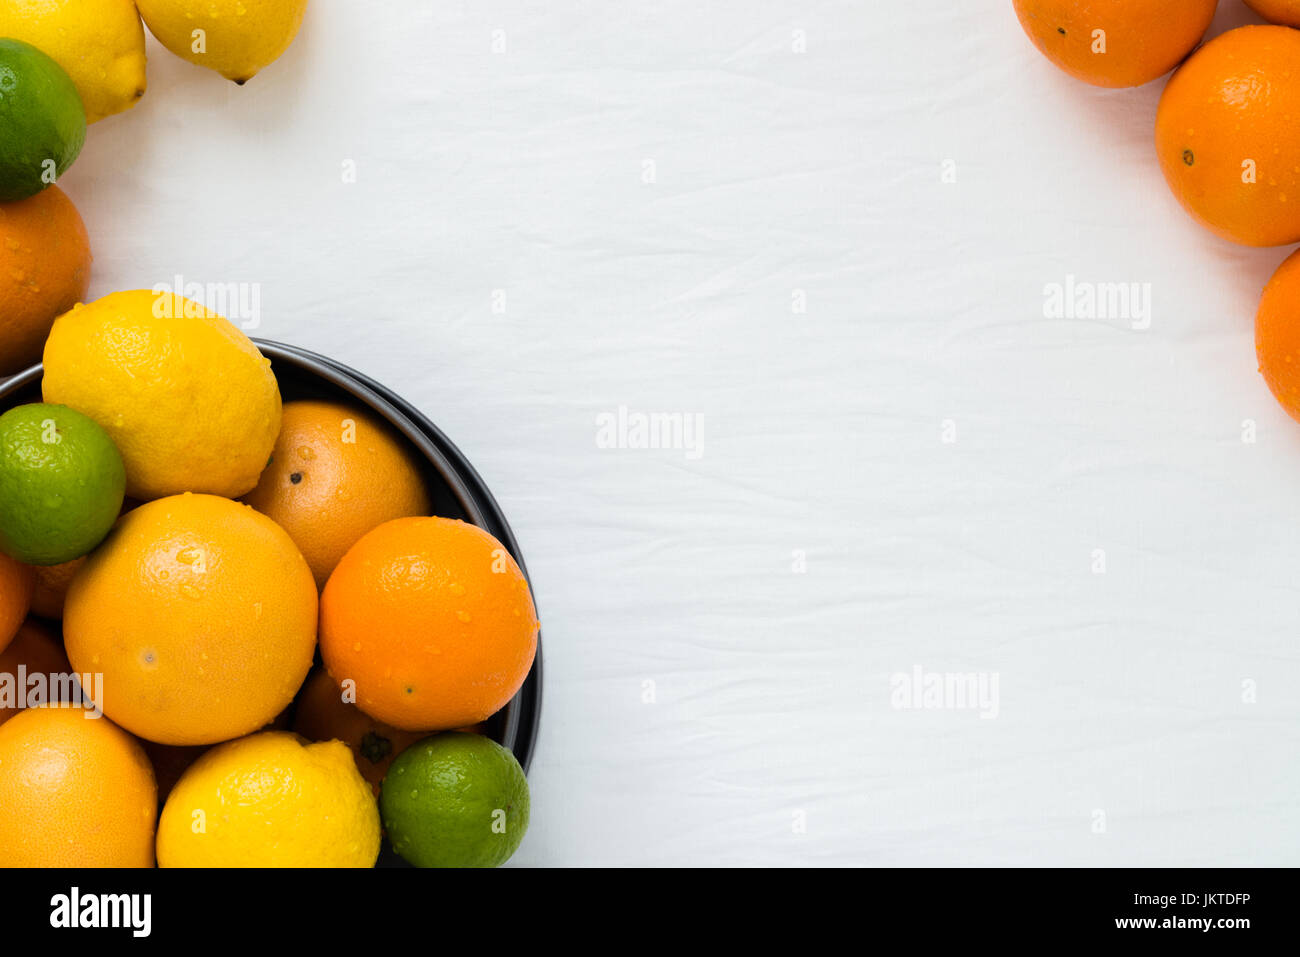 Bowl with different types of whole citruses: oranges, grapefruits, limes and lemons on white cloth background with - Stock Image